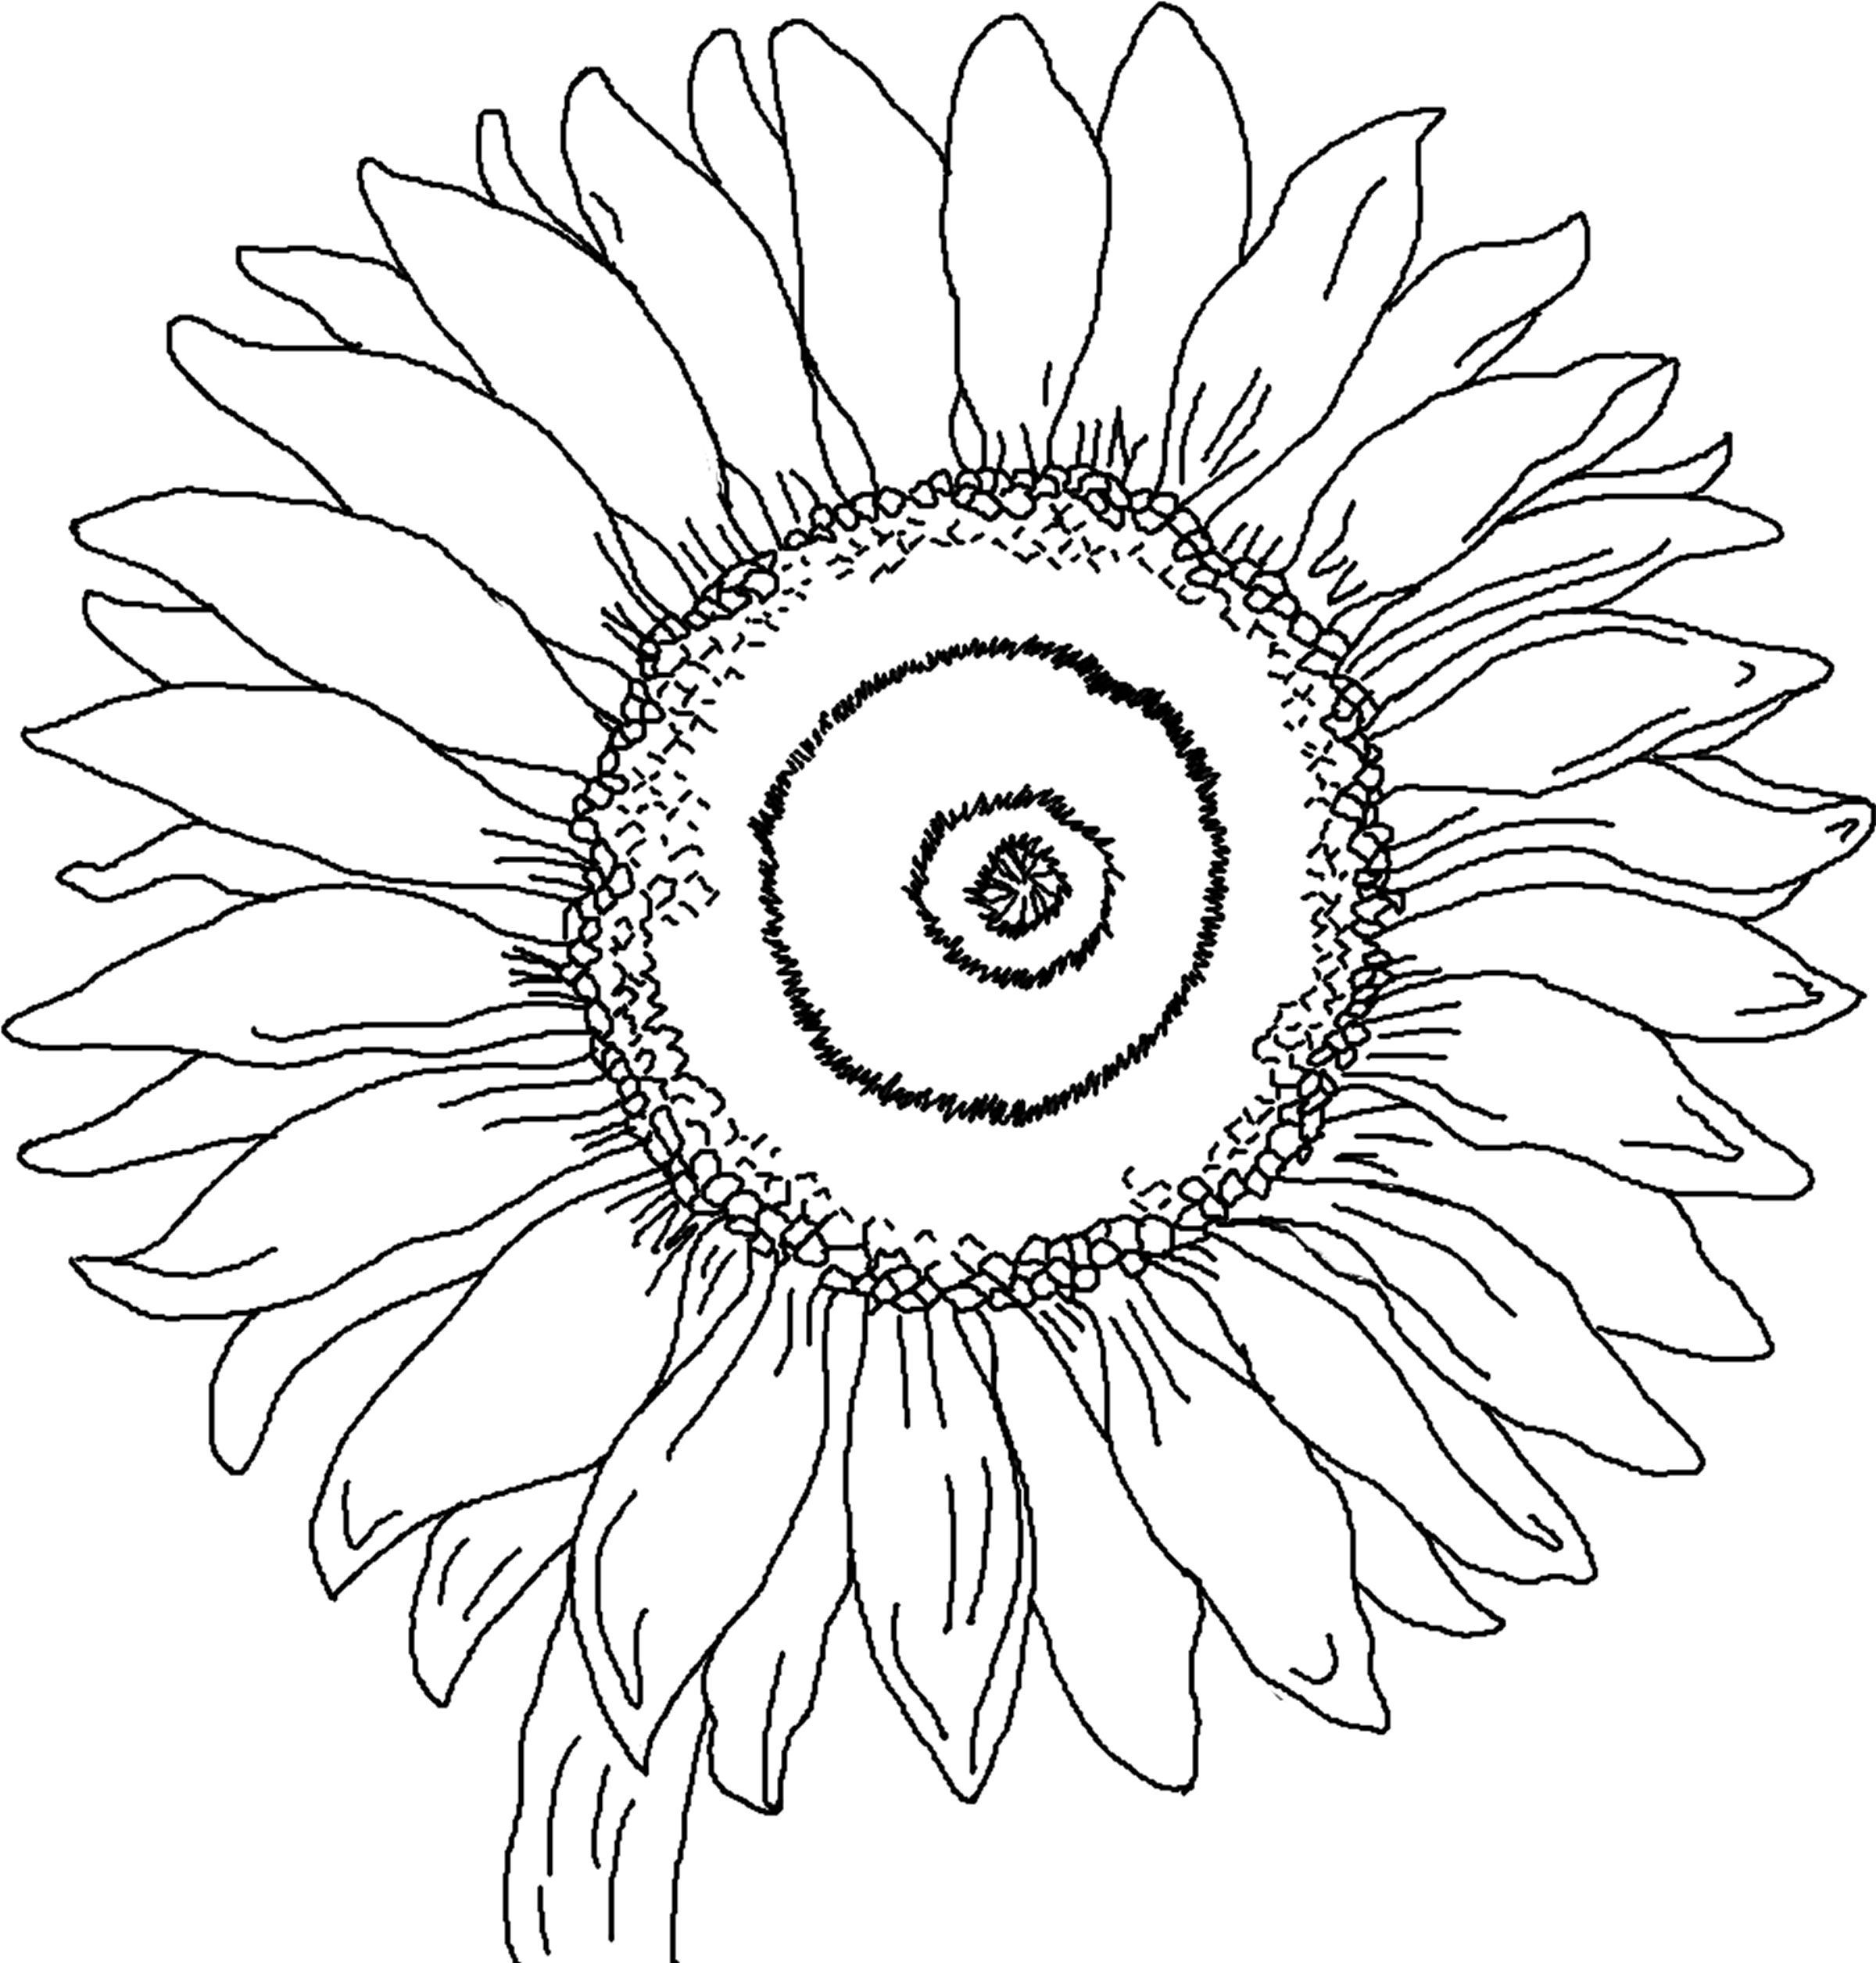 photograph relating to Printable Pictures of Sunflowers named Free of charge Printable Sunflower Coloring Internet pages For Children auction